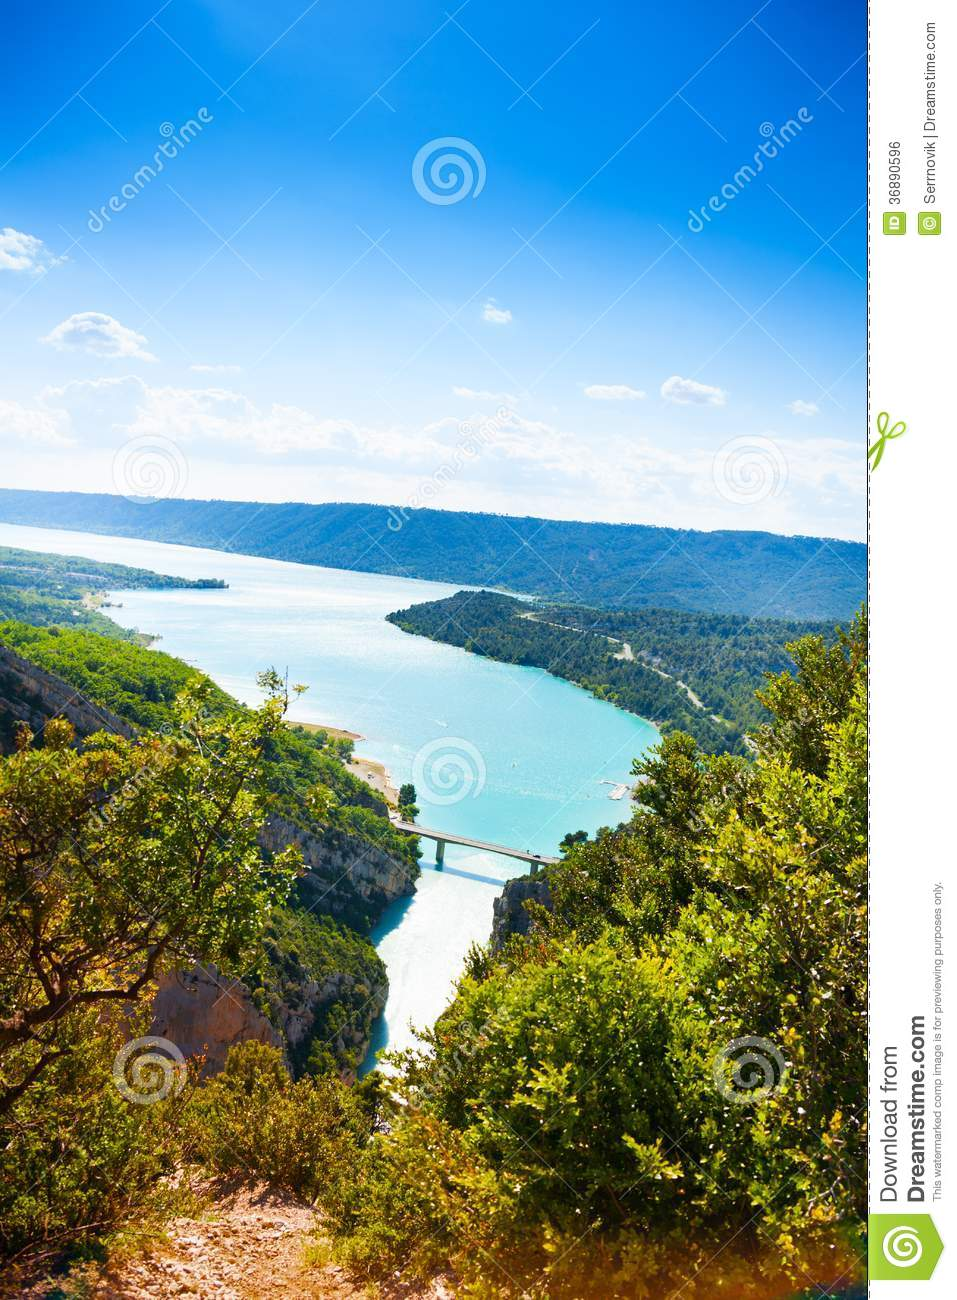 Download Lake de Castillon fotografia stock. Immagine di aperto - 36890596